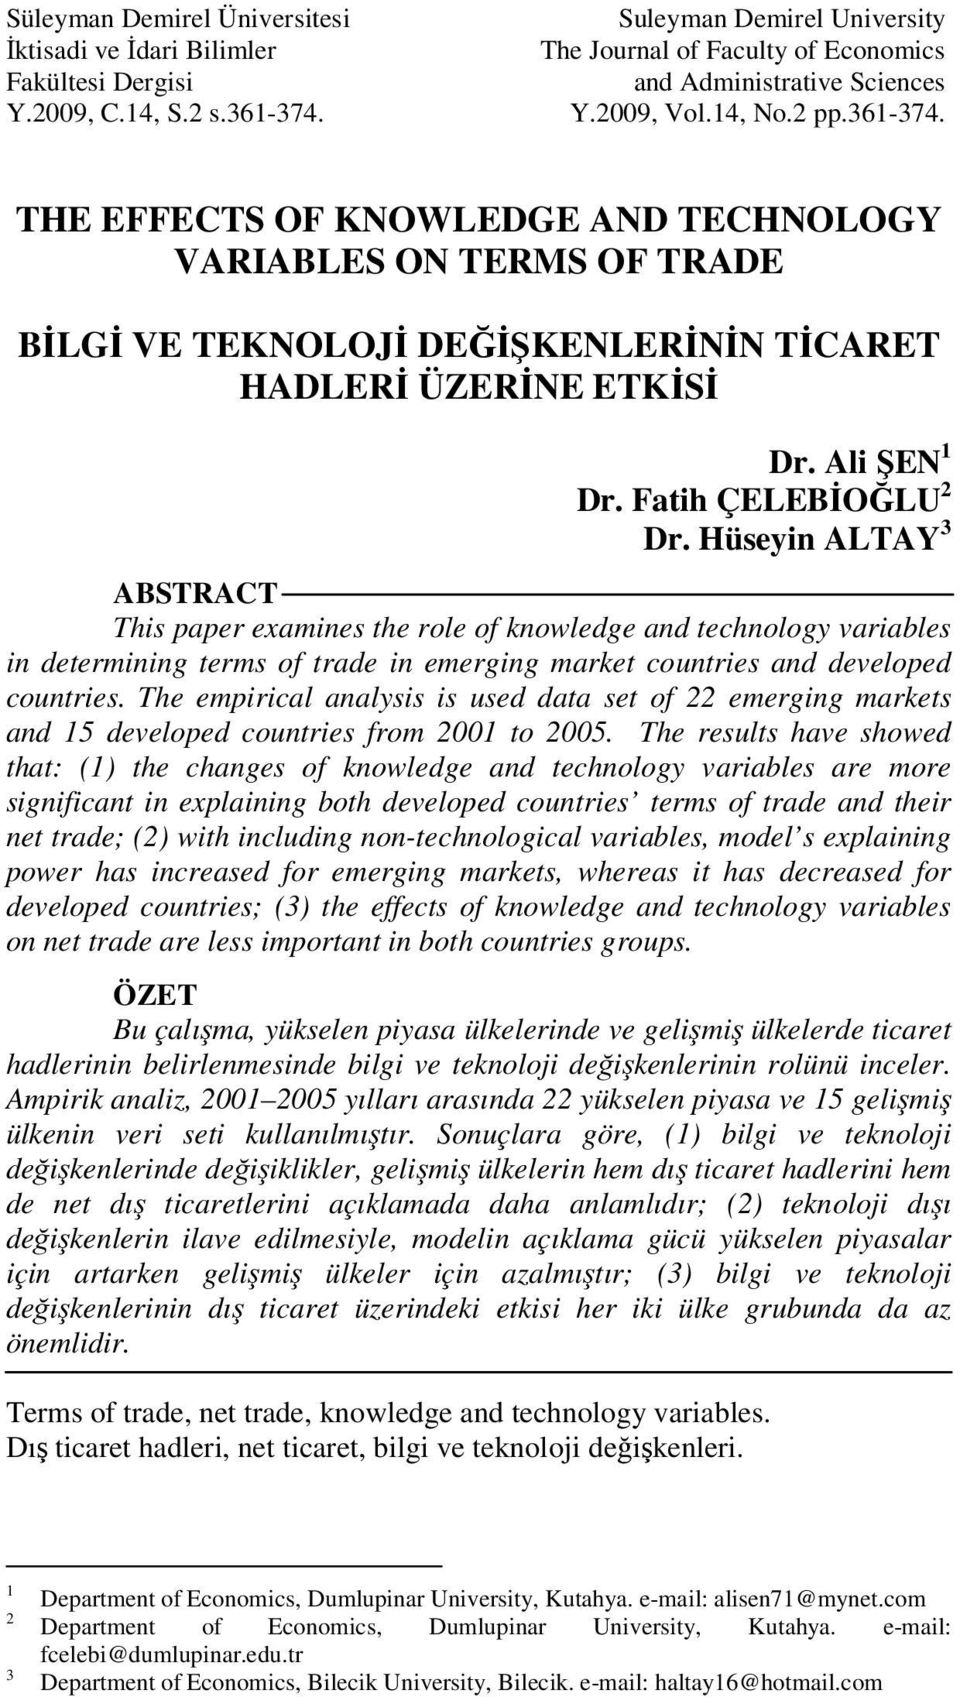 Fatih ÇELEBİOĞLU 2 Dr. Hüseyin ALTAY 3 ABSTRACT This paper examines the role of knowledge and technology variables in determining terms of trade in emerging market countries and developed countries.